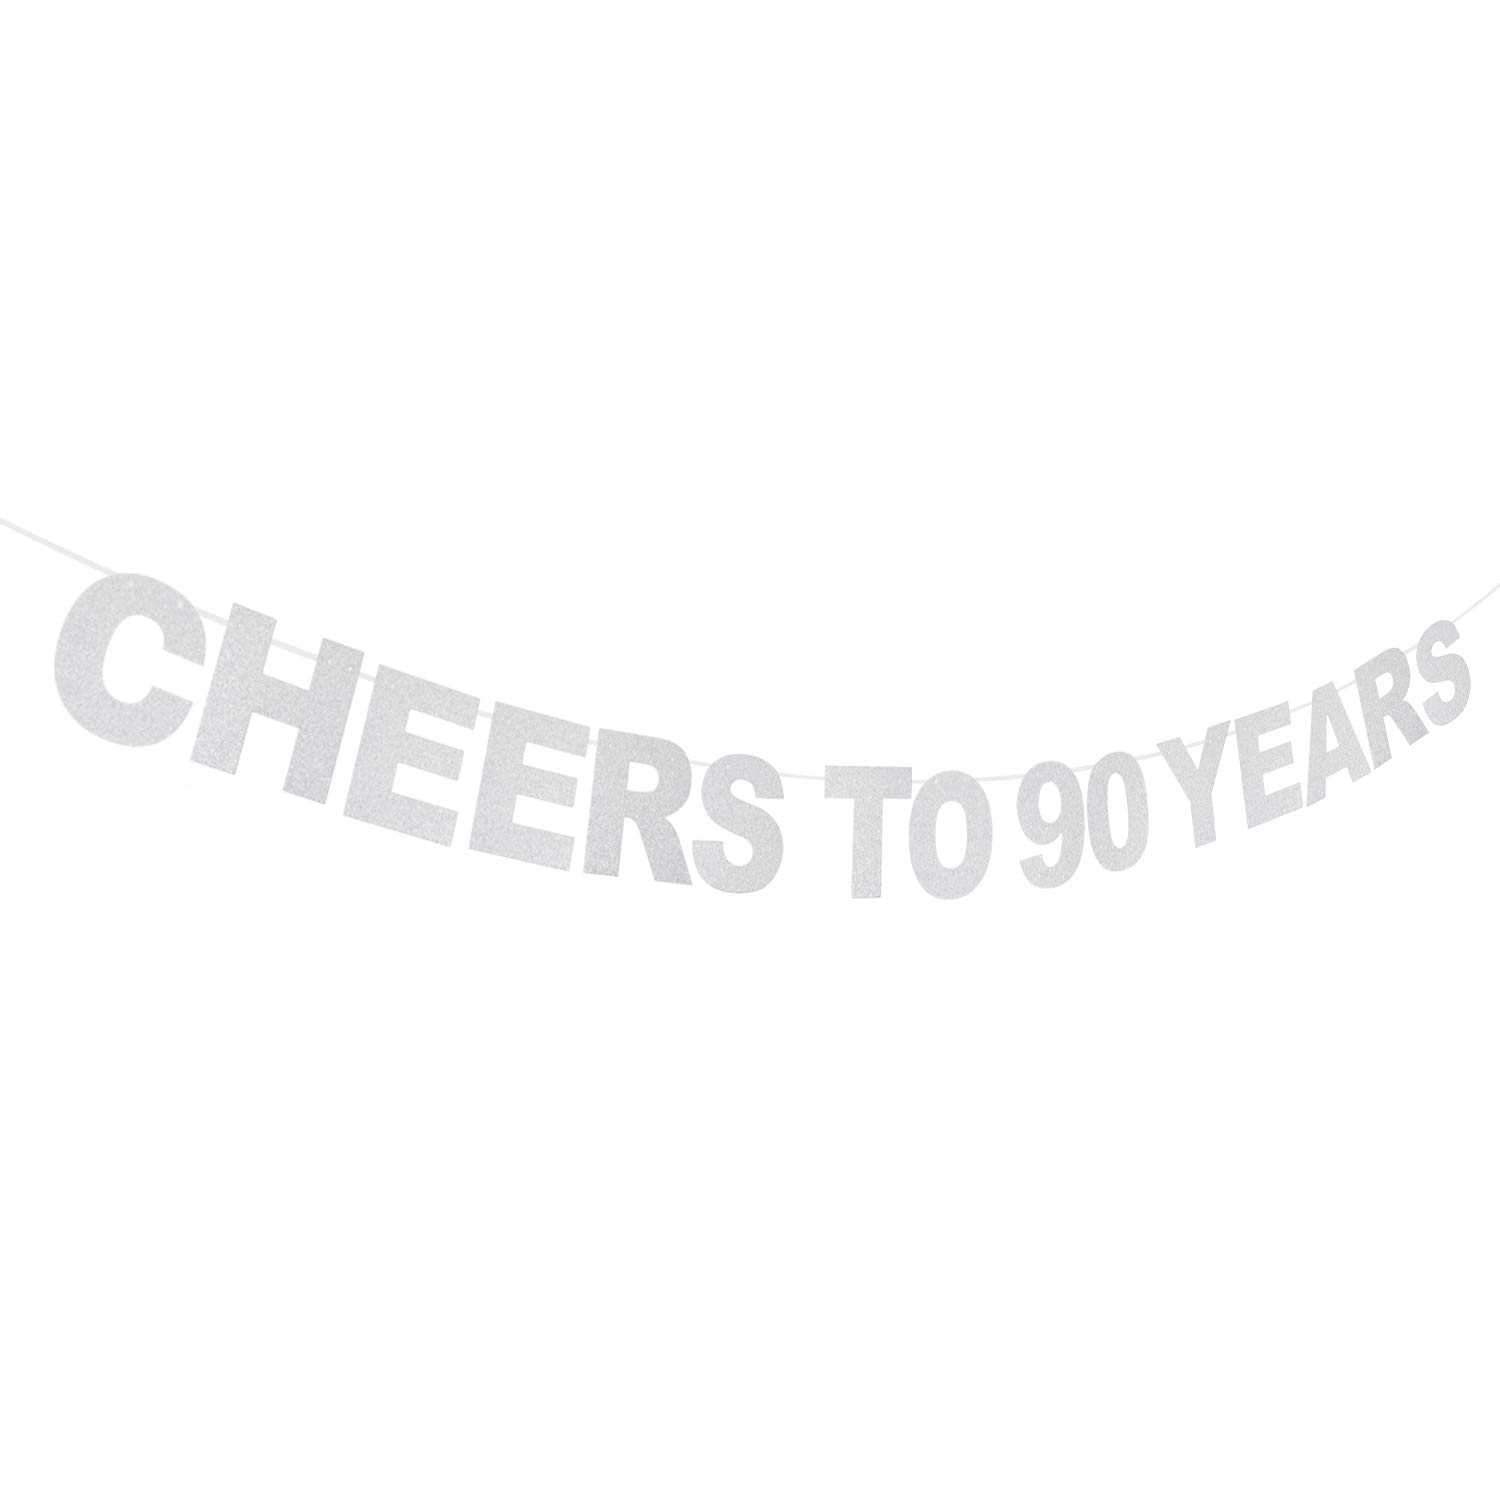 AERZETIX Cheers to 90 Years Silver Banner Happy 90th Birthday Ninety Years Old Anniversary Keepsake Party Decoration Sign for Men or Women